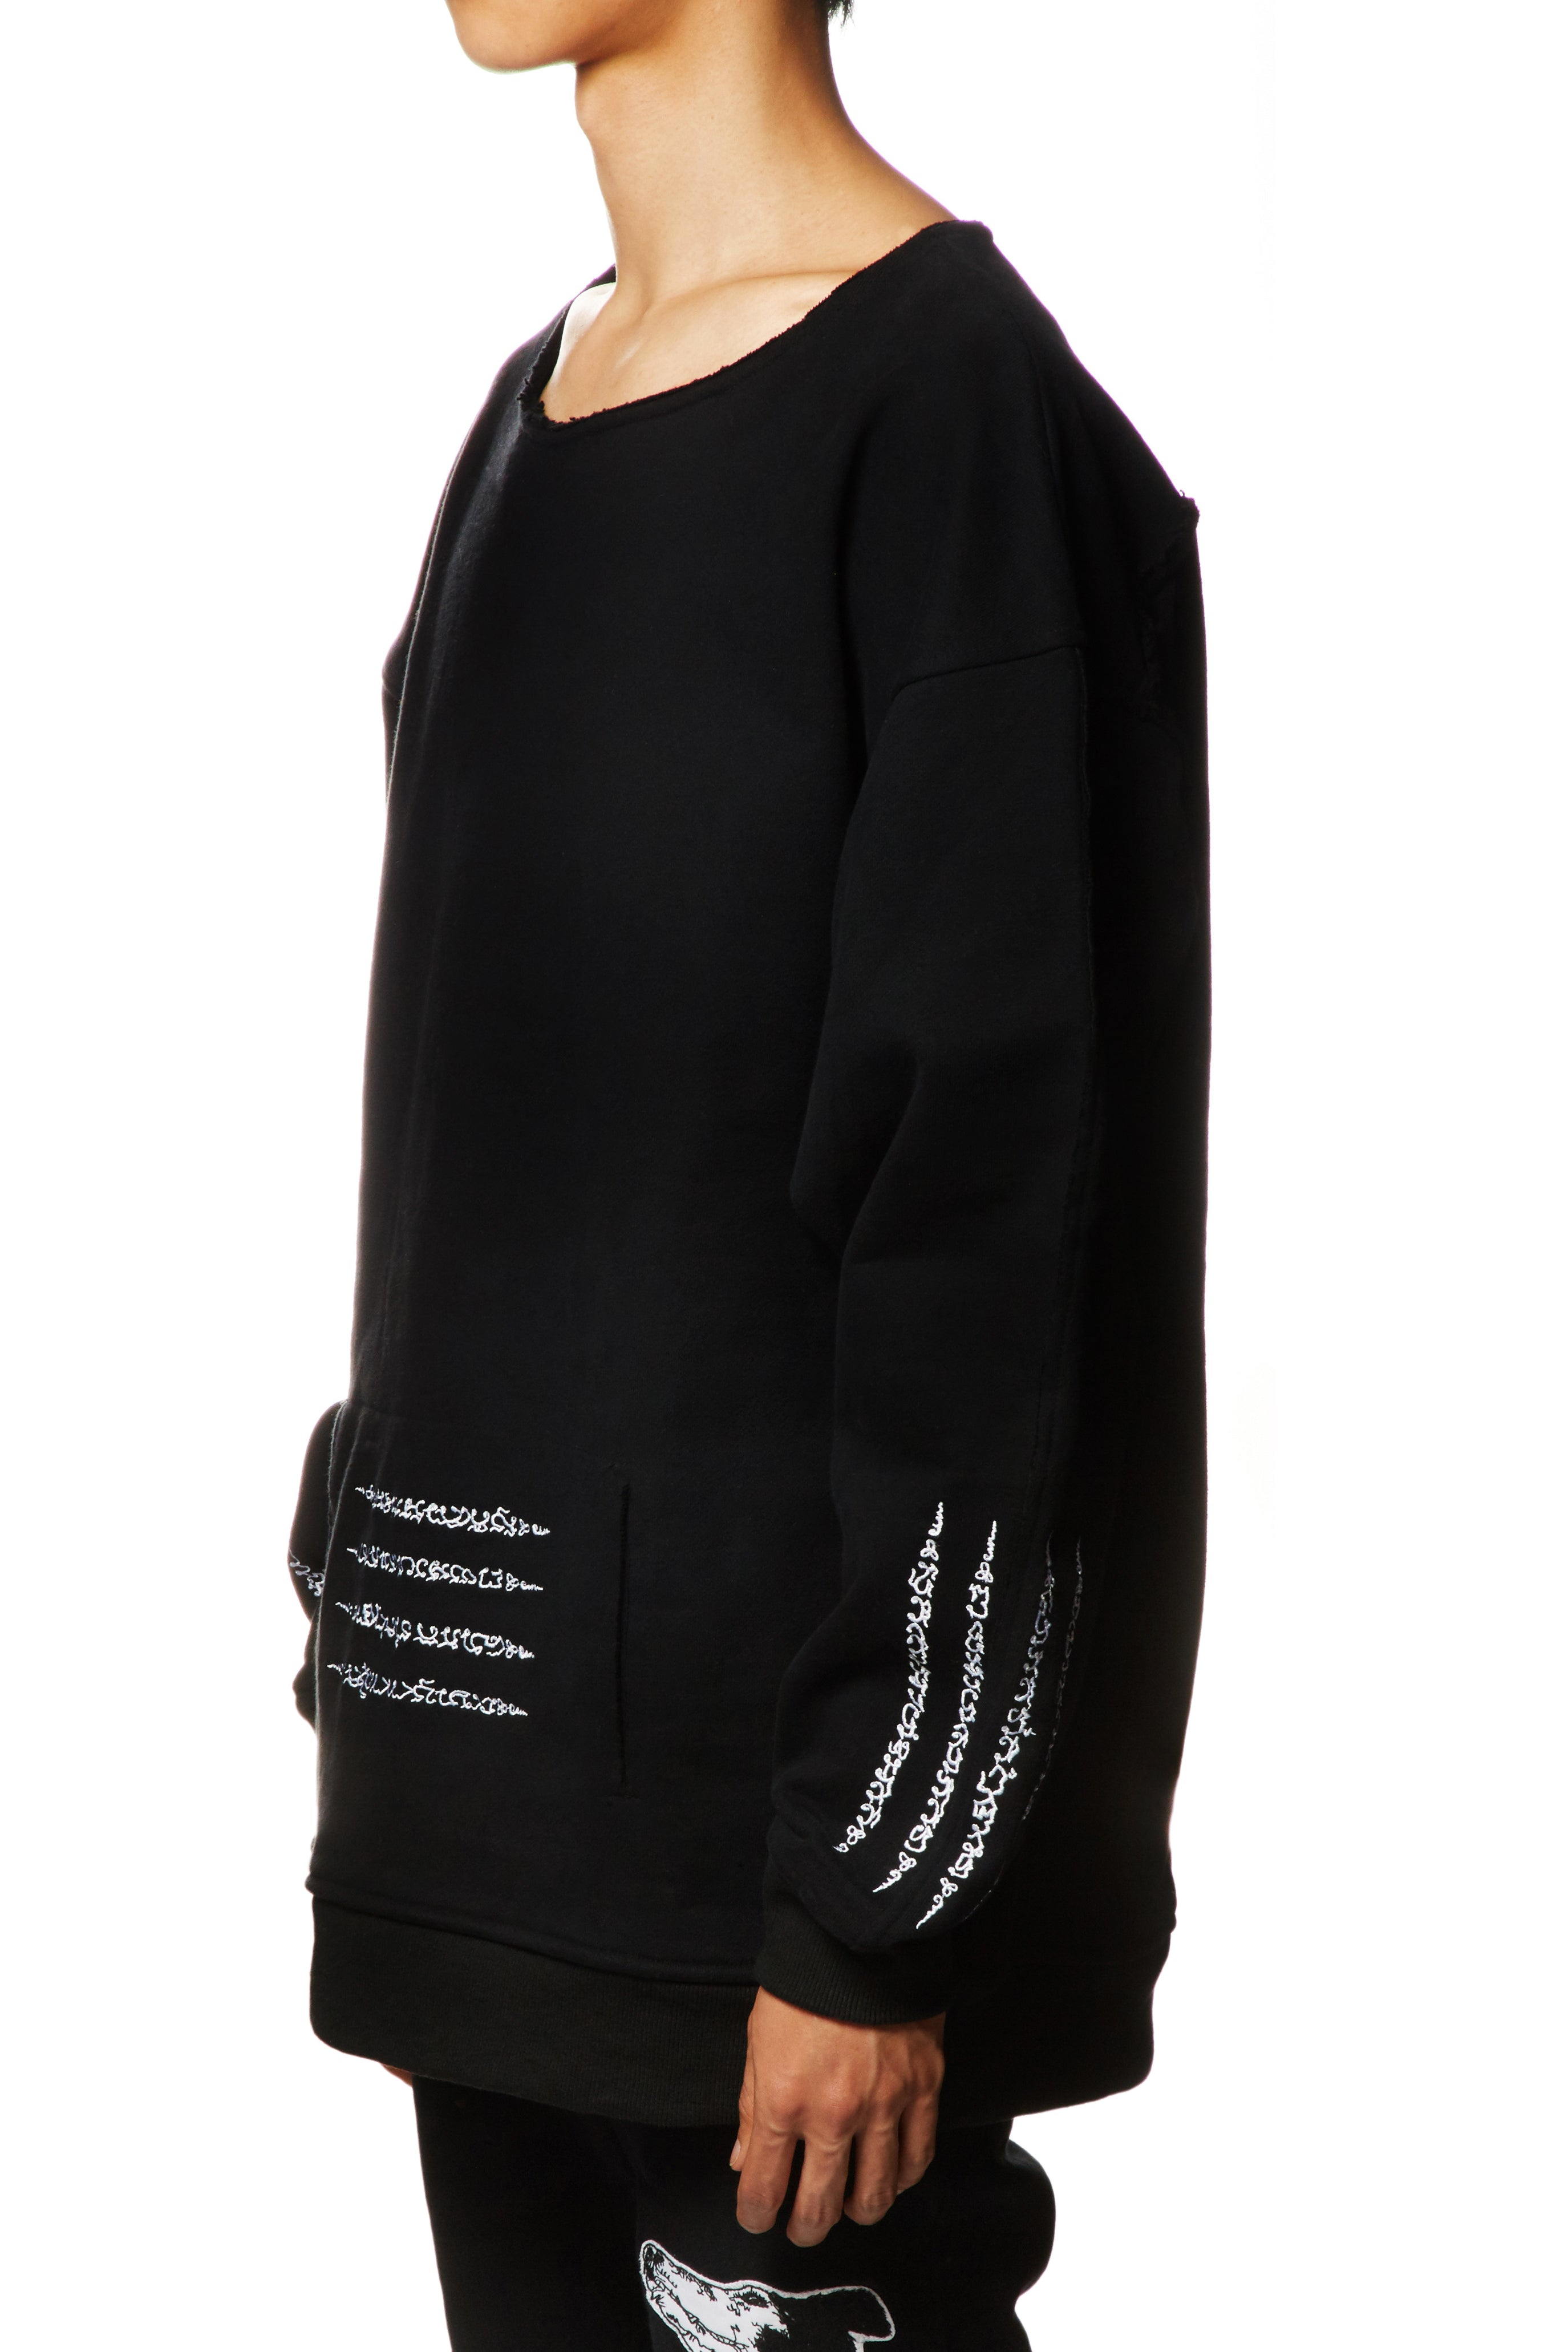 Black Sanskrit Sweatshirt